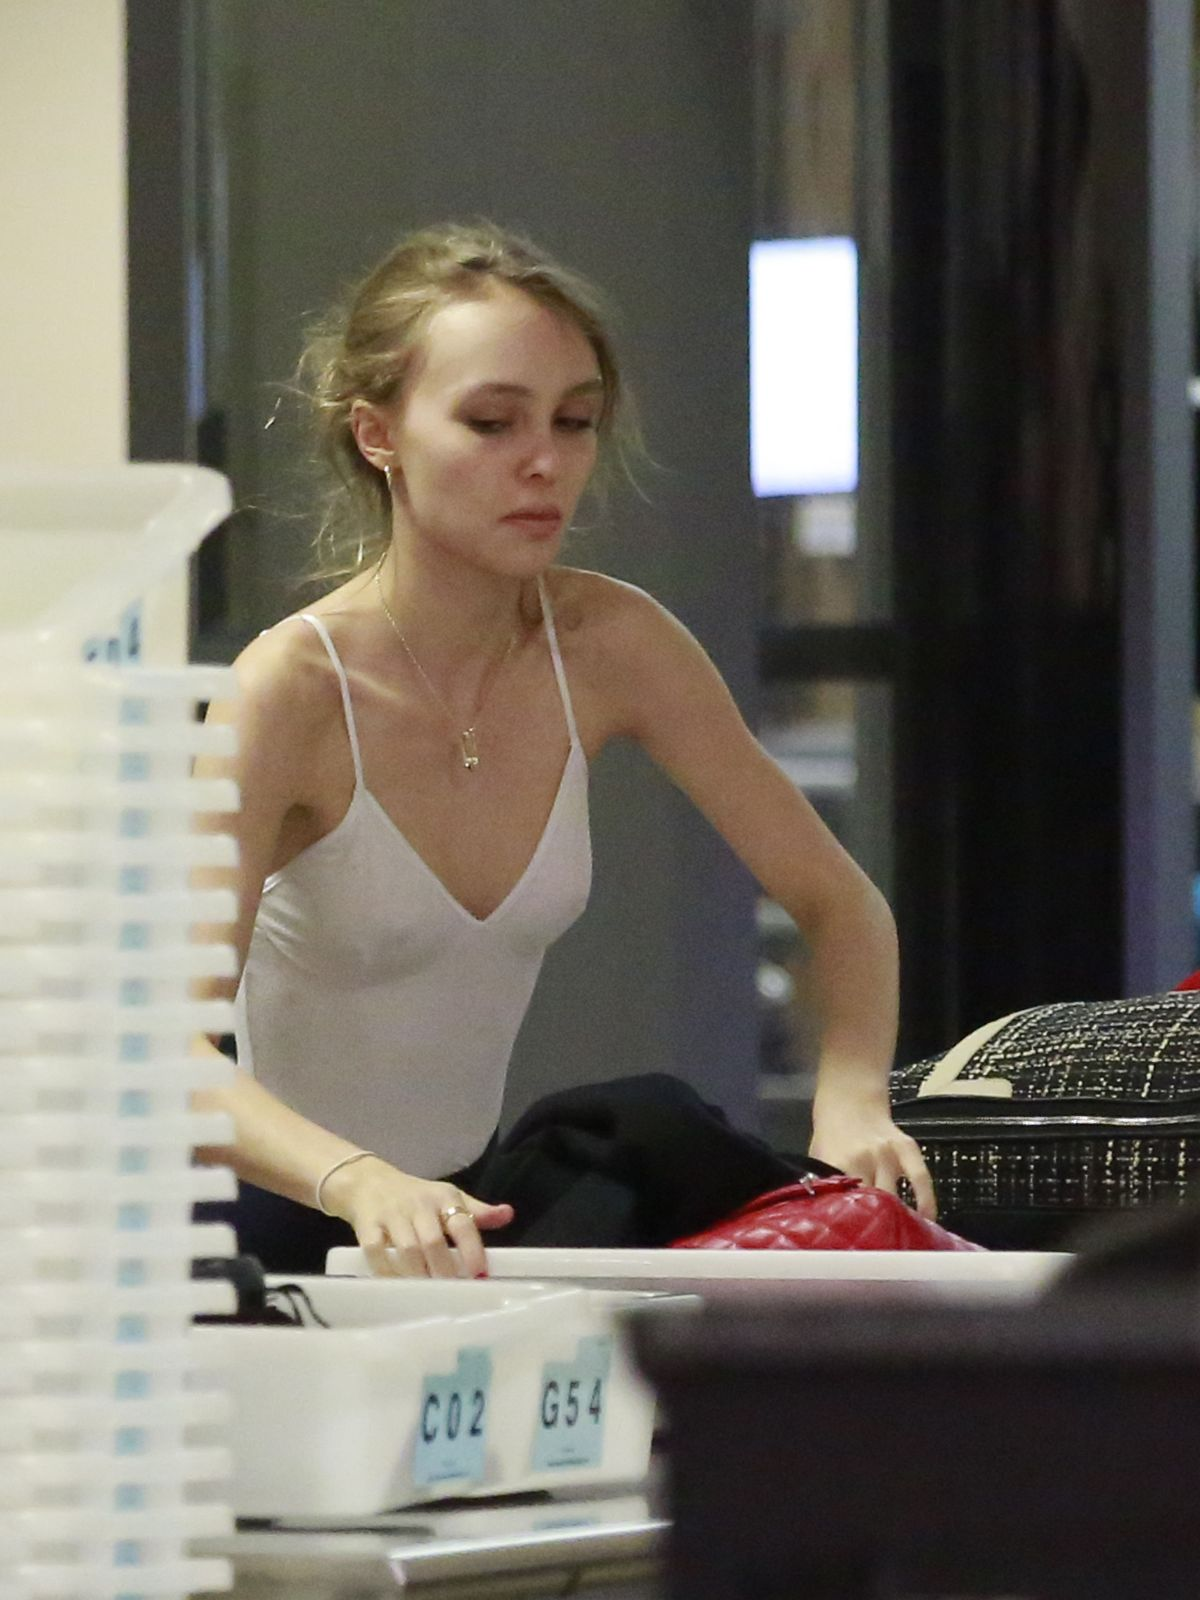 LILY-ROSE DEPP at Los Angeles International Airport 06/18/2016